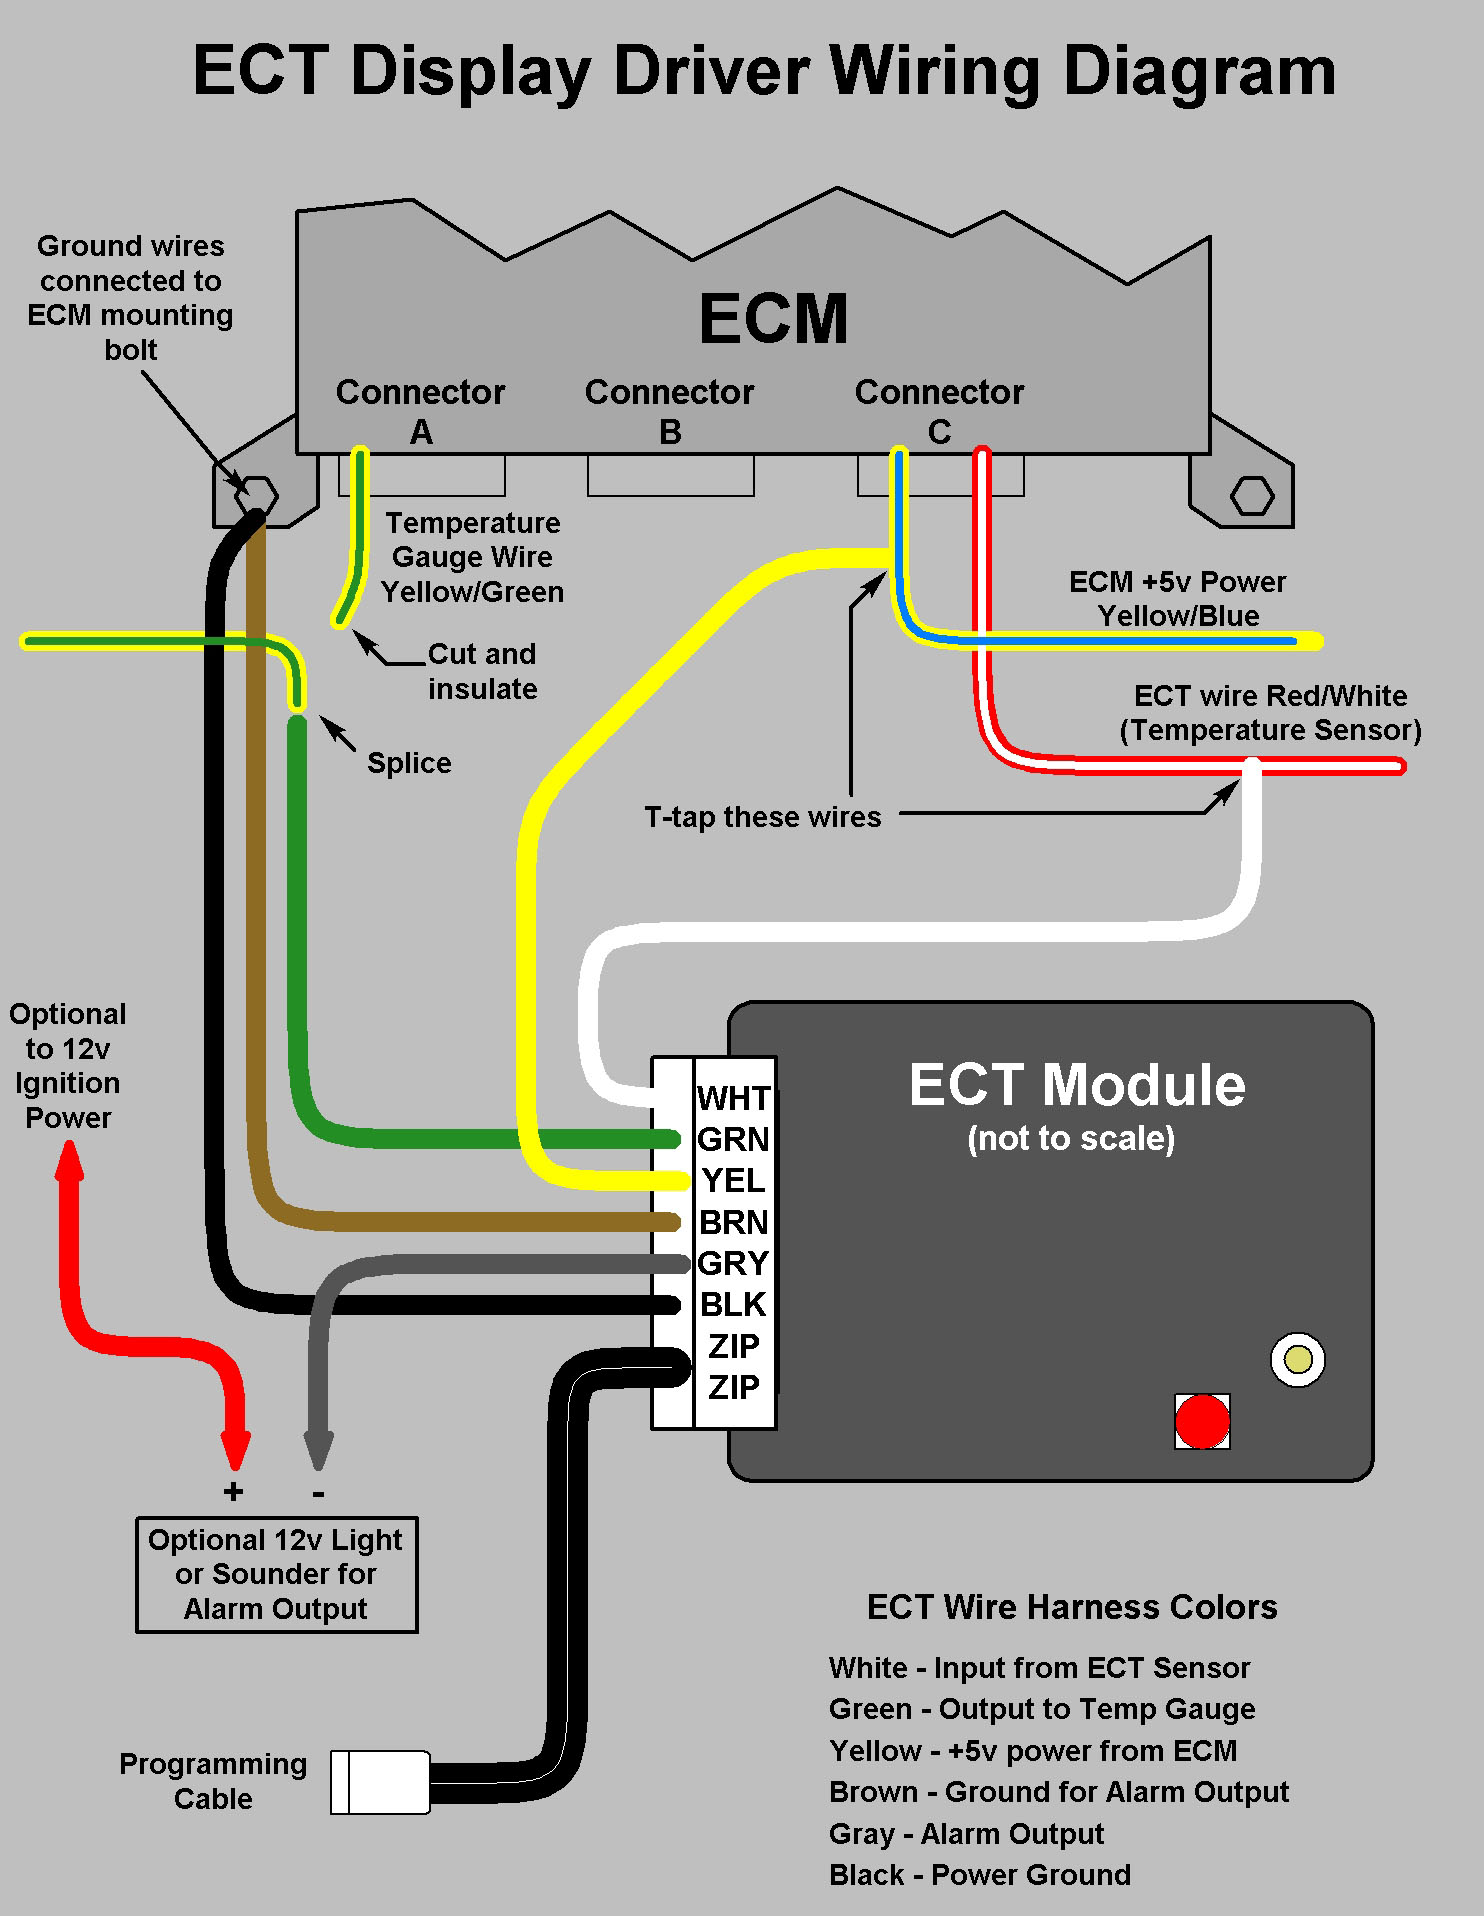 ECT wiring diagram ems wiring diagram management system \u2022 wiring diagrams j squared co aem ems 4 wiring diagram at cos-gaming.co